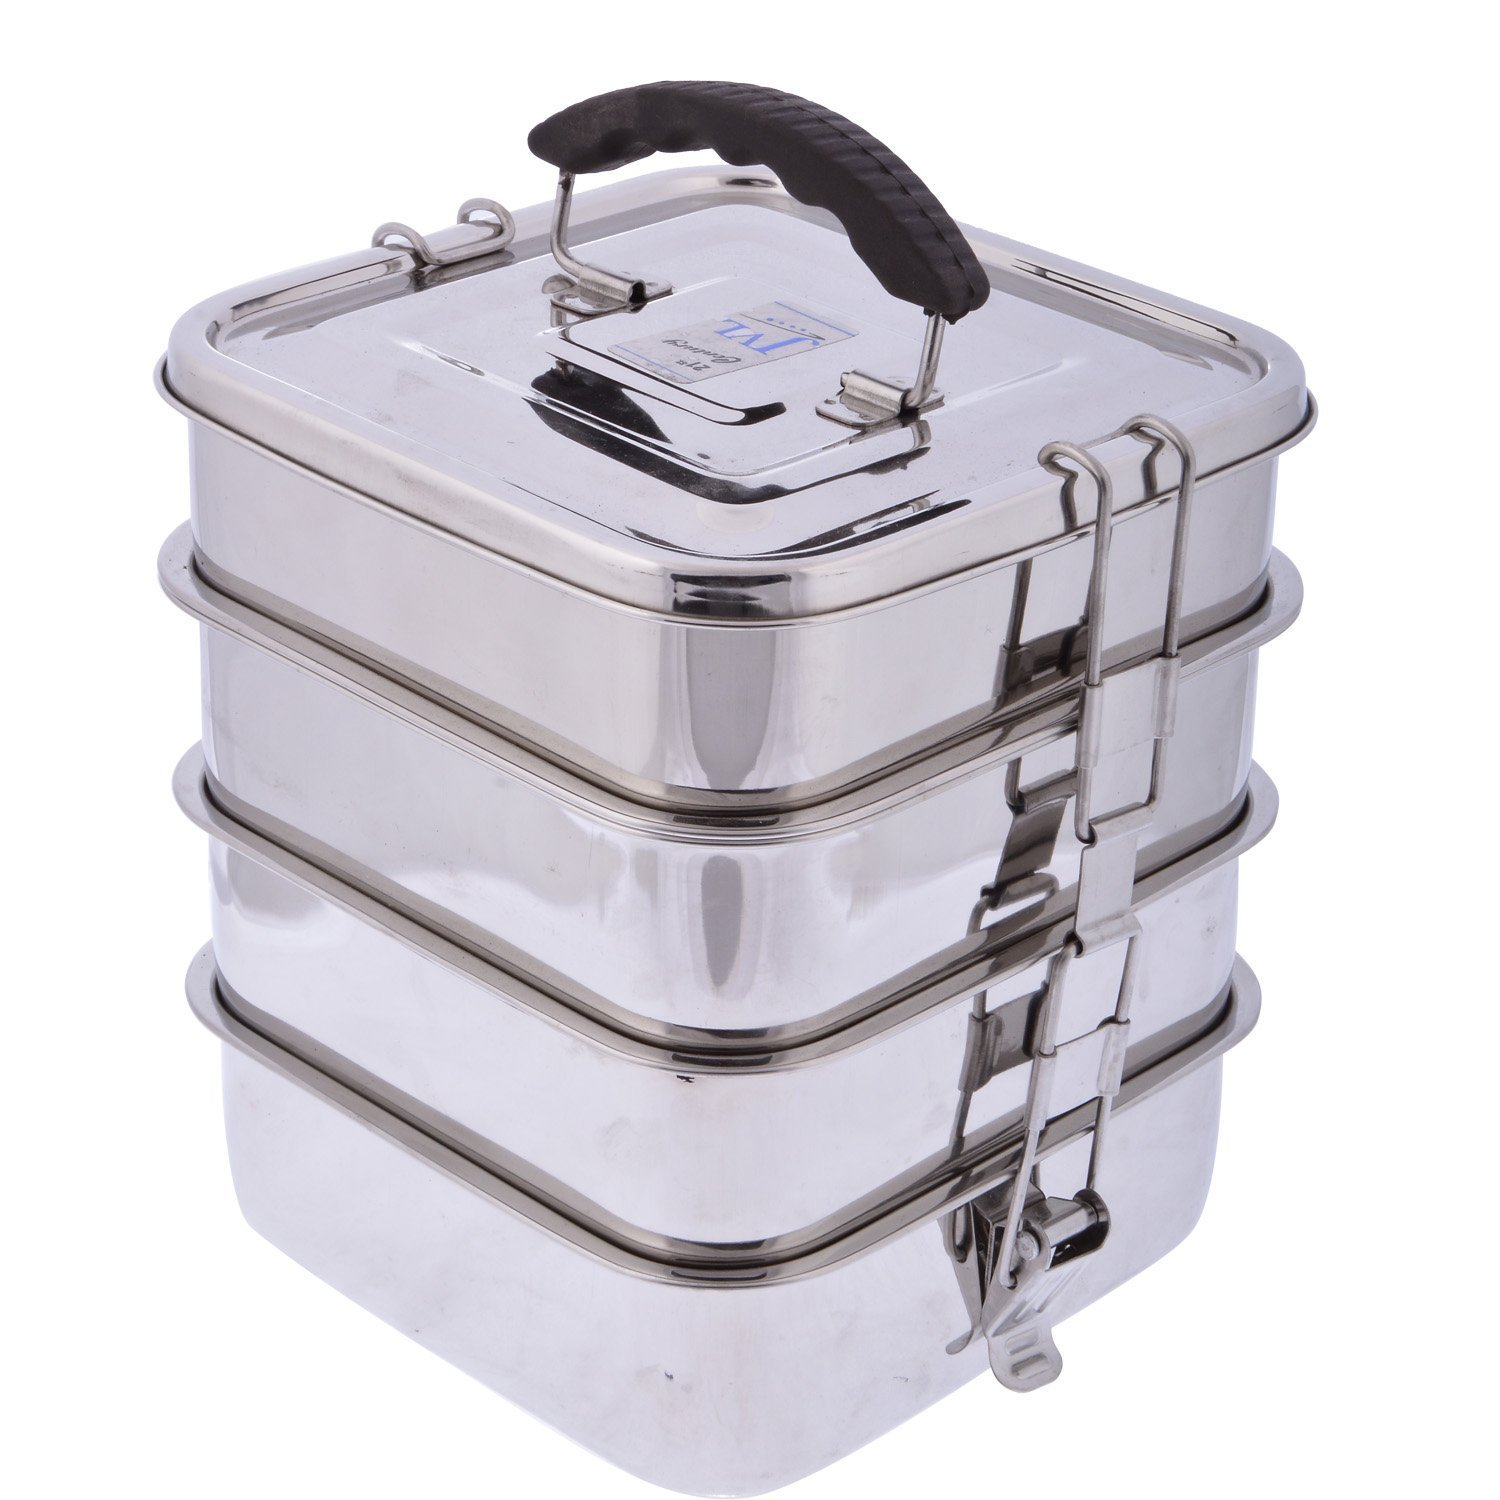 Heavy duty stainless steel 4 tier square bento lunch box bag meal tiffin set travel 4 plates - small containers inside and spoons